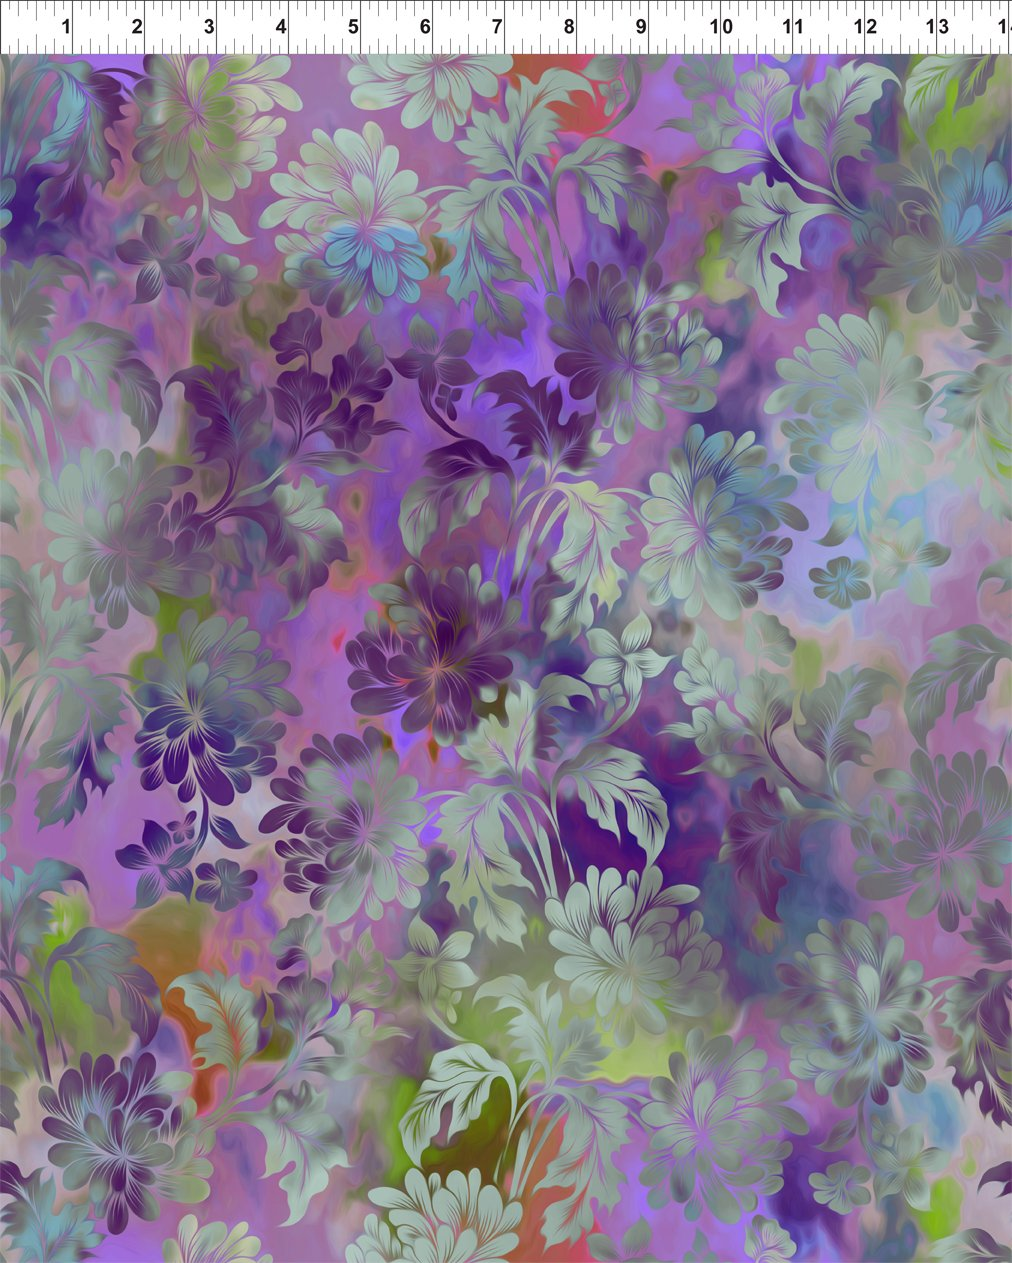 In the Beginning - Diaphanous/Lavender - 2ENC 4